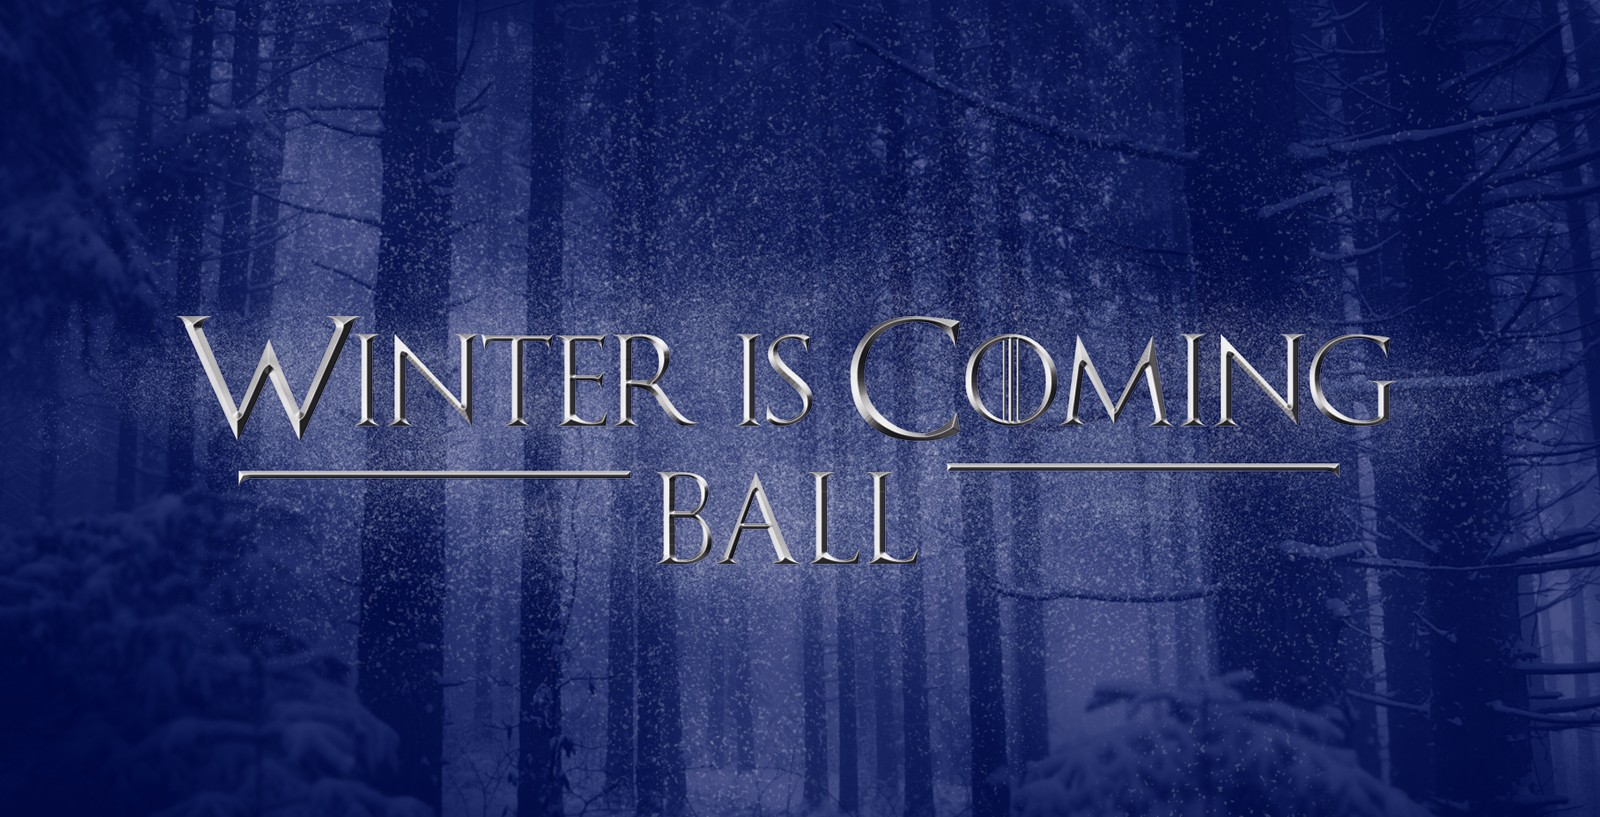 Winter is Coming Ball